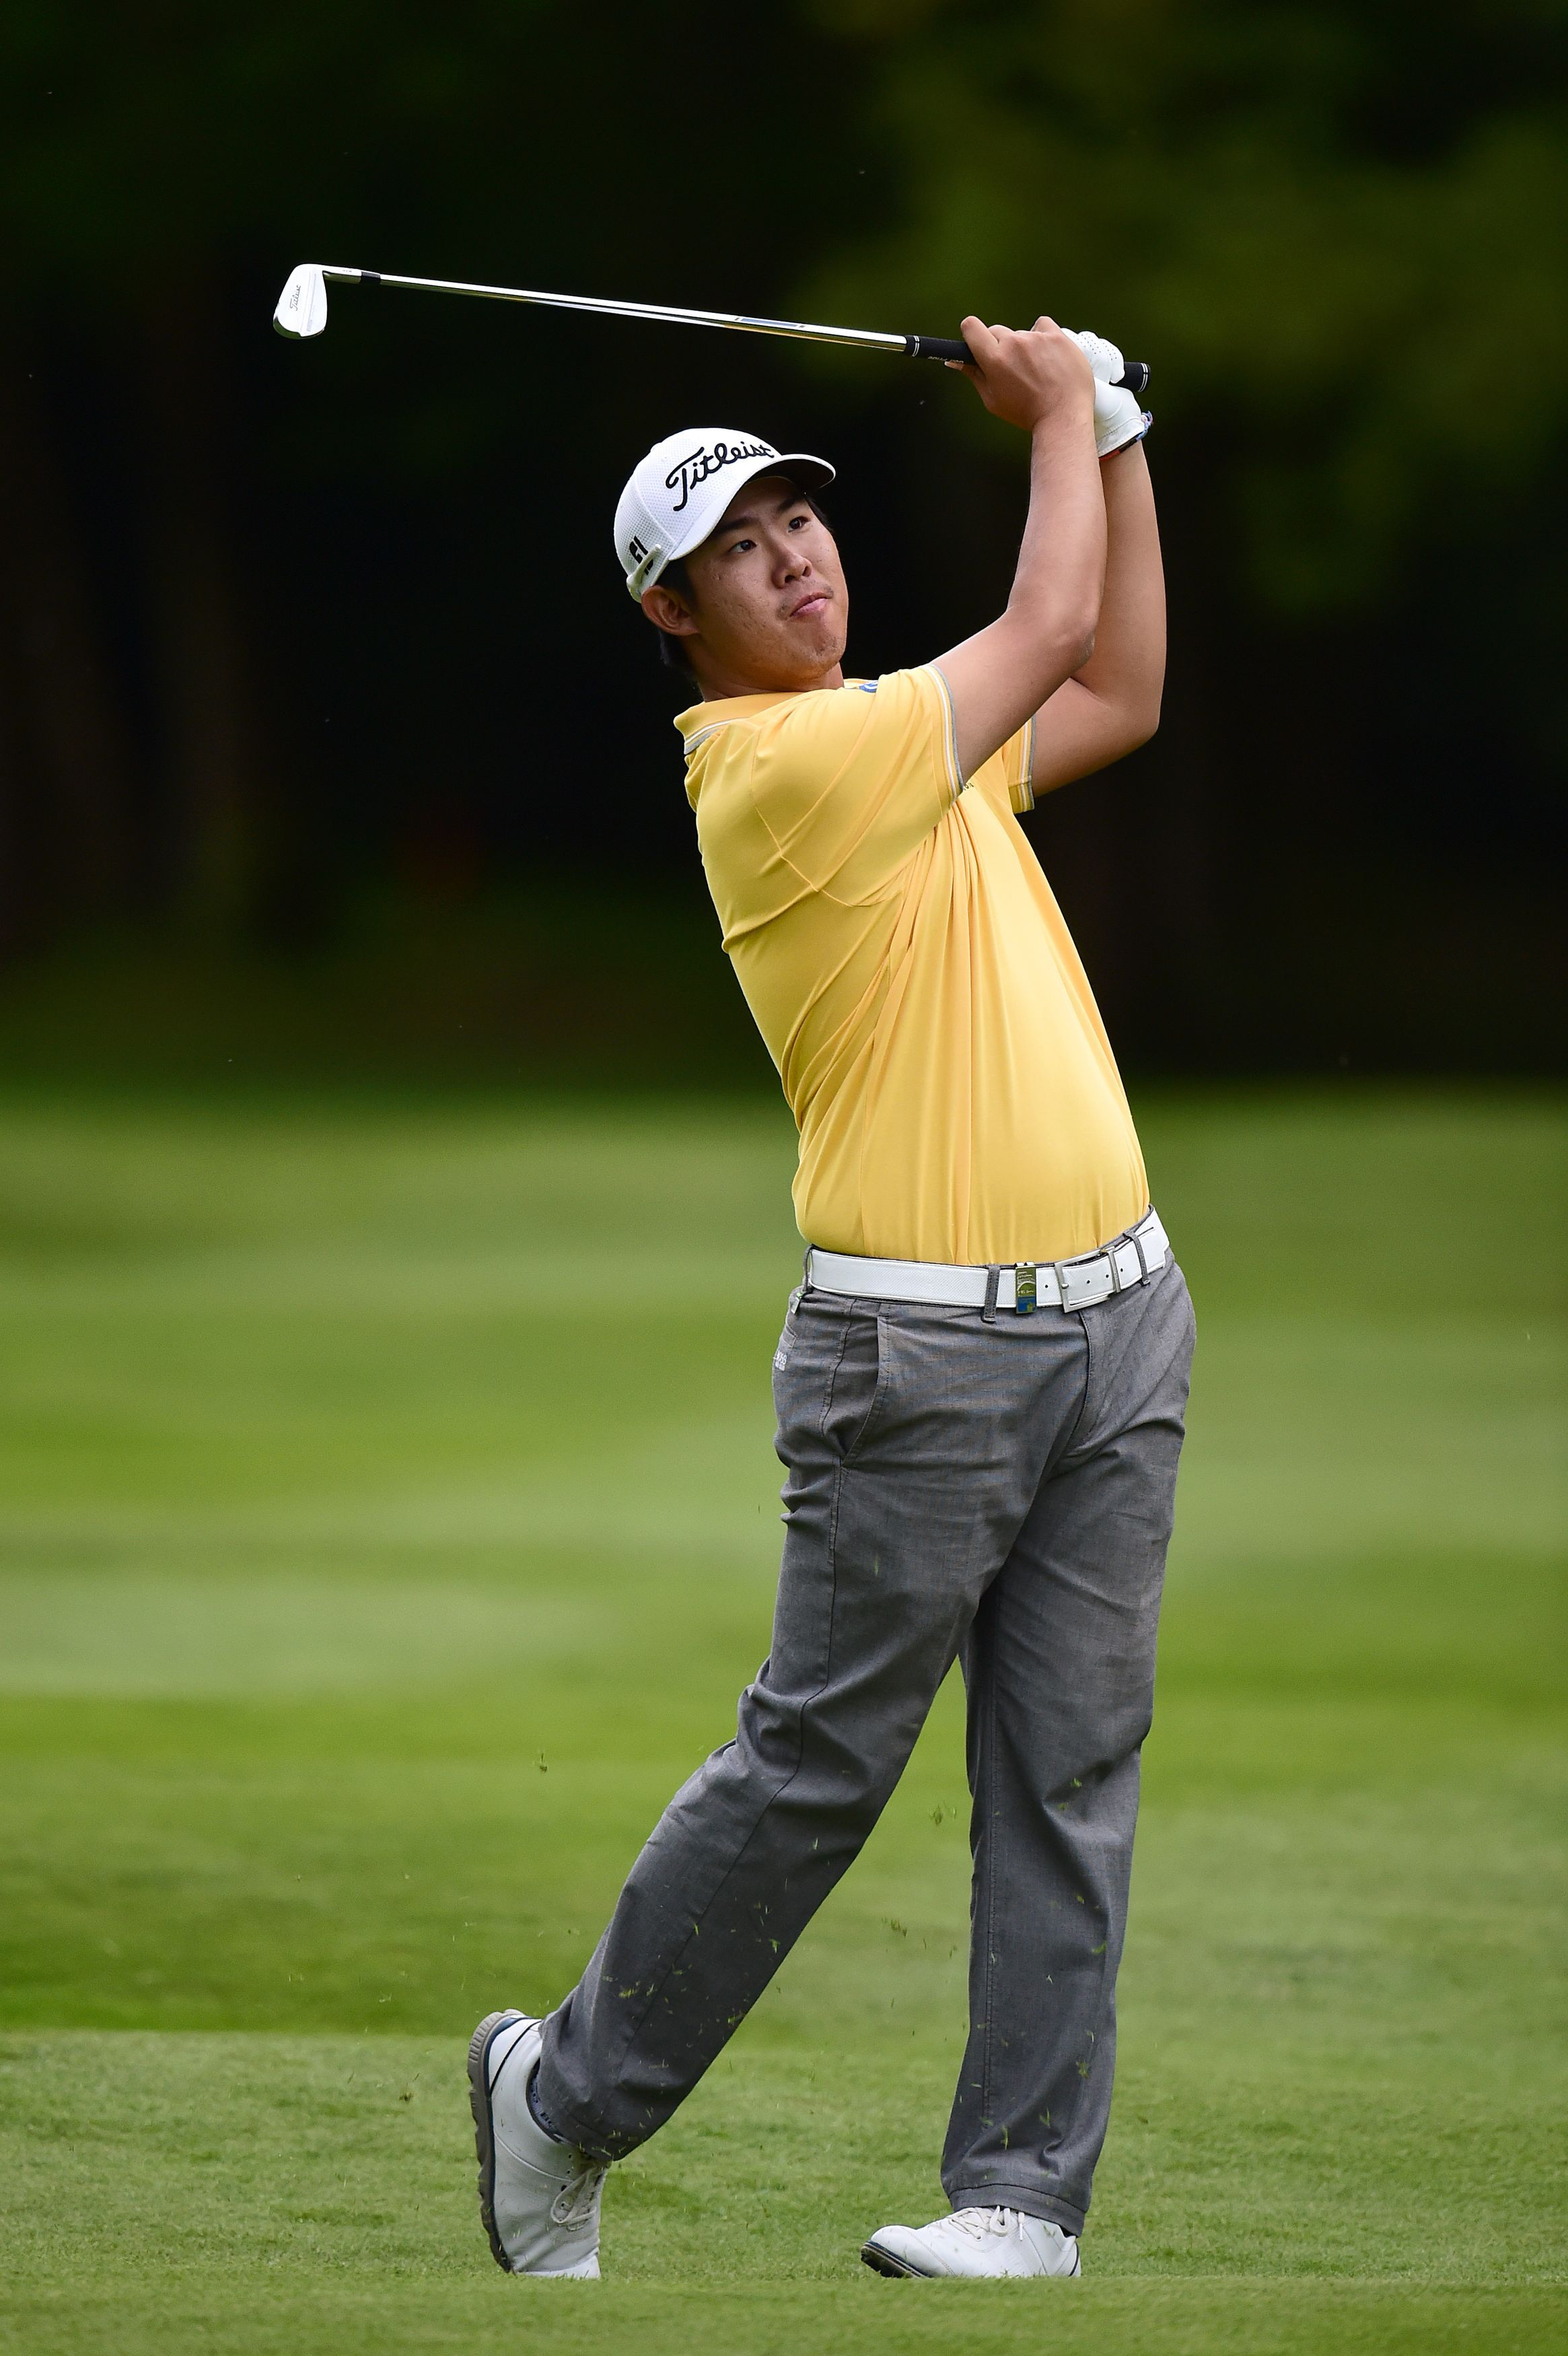 Korea's Byeong Hun An during day two of the BMW PGA Championship at the Wentworth golf club, Virgina Water, England, Friday May 22, 2015. (Adam Davy/PA via AP) UNITED KINGDOM OUT  NO SALES  NO ARCHIVE